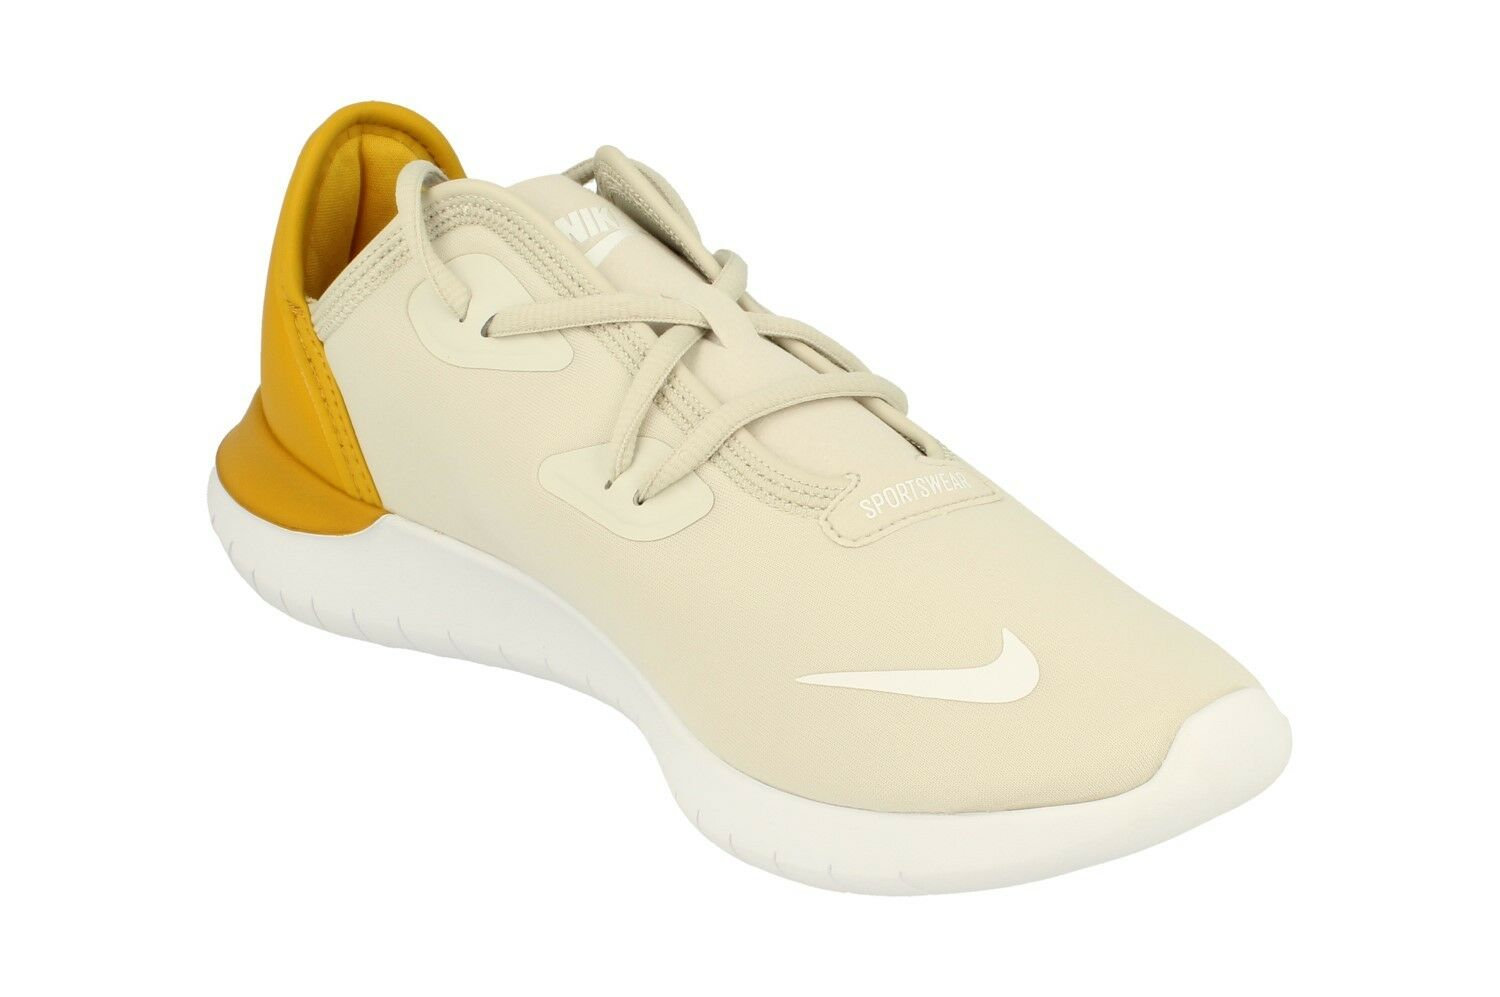 Nike Hakata homme fonctionnement Trainers Trainers Trainers Aj8879 Baskets chaussures 001 6b47cc